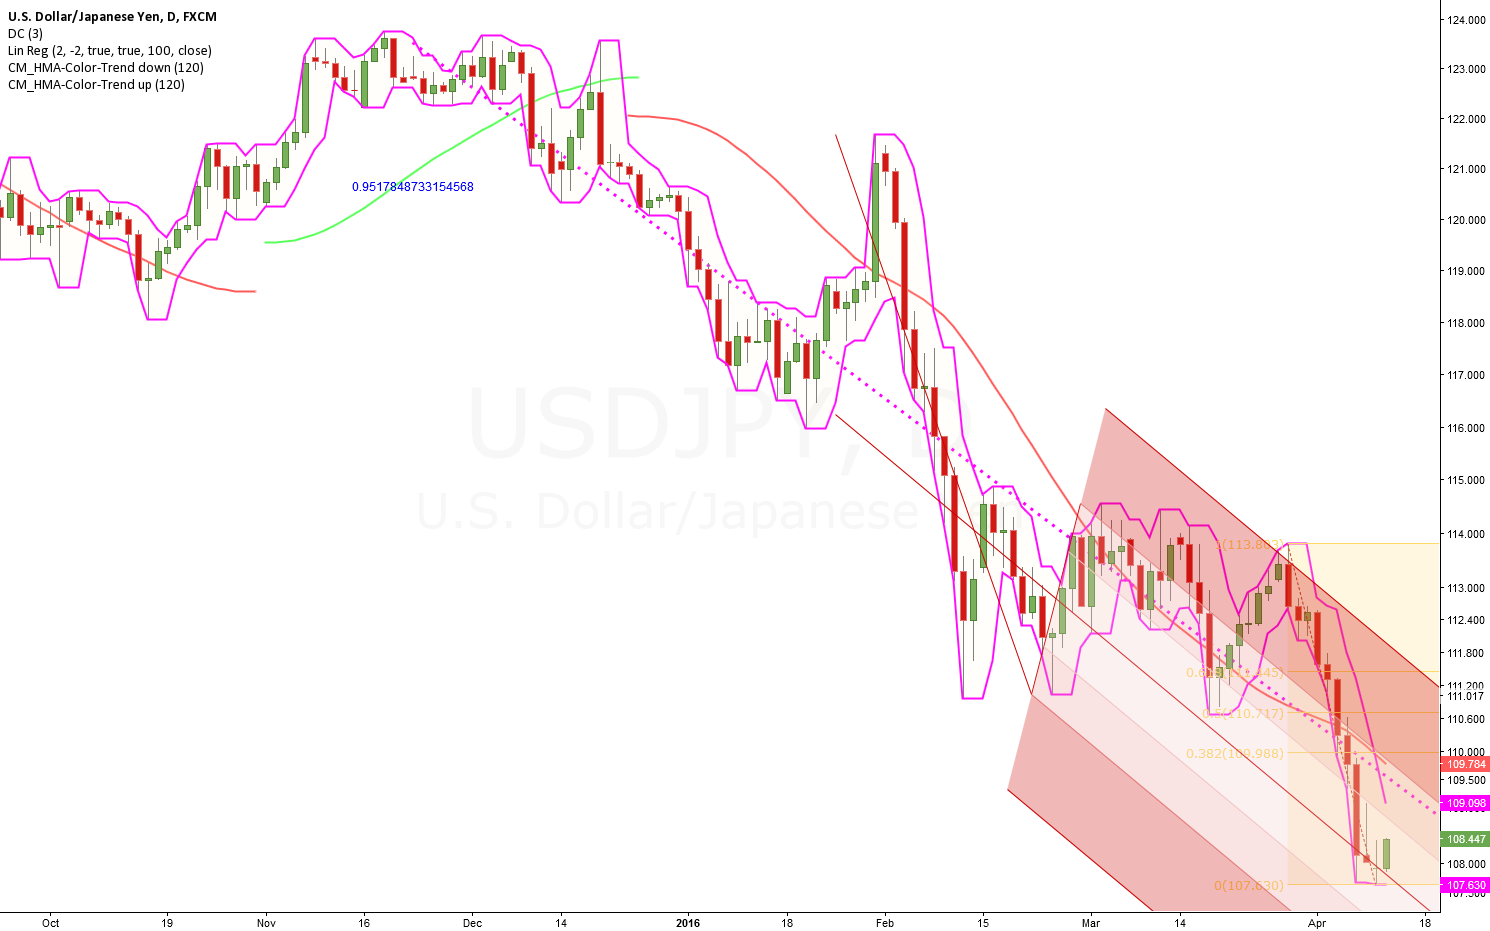 Downtrend strong